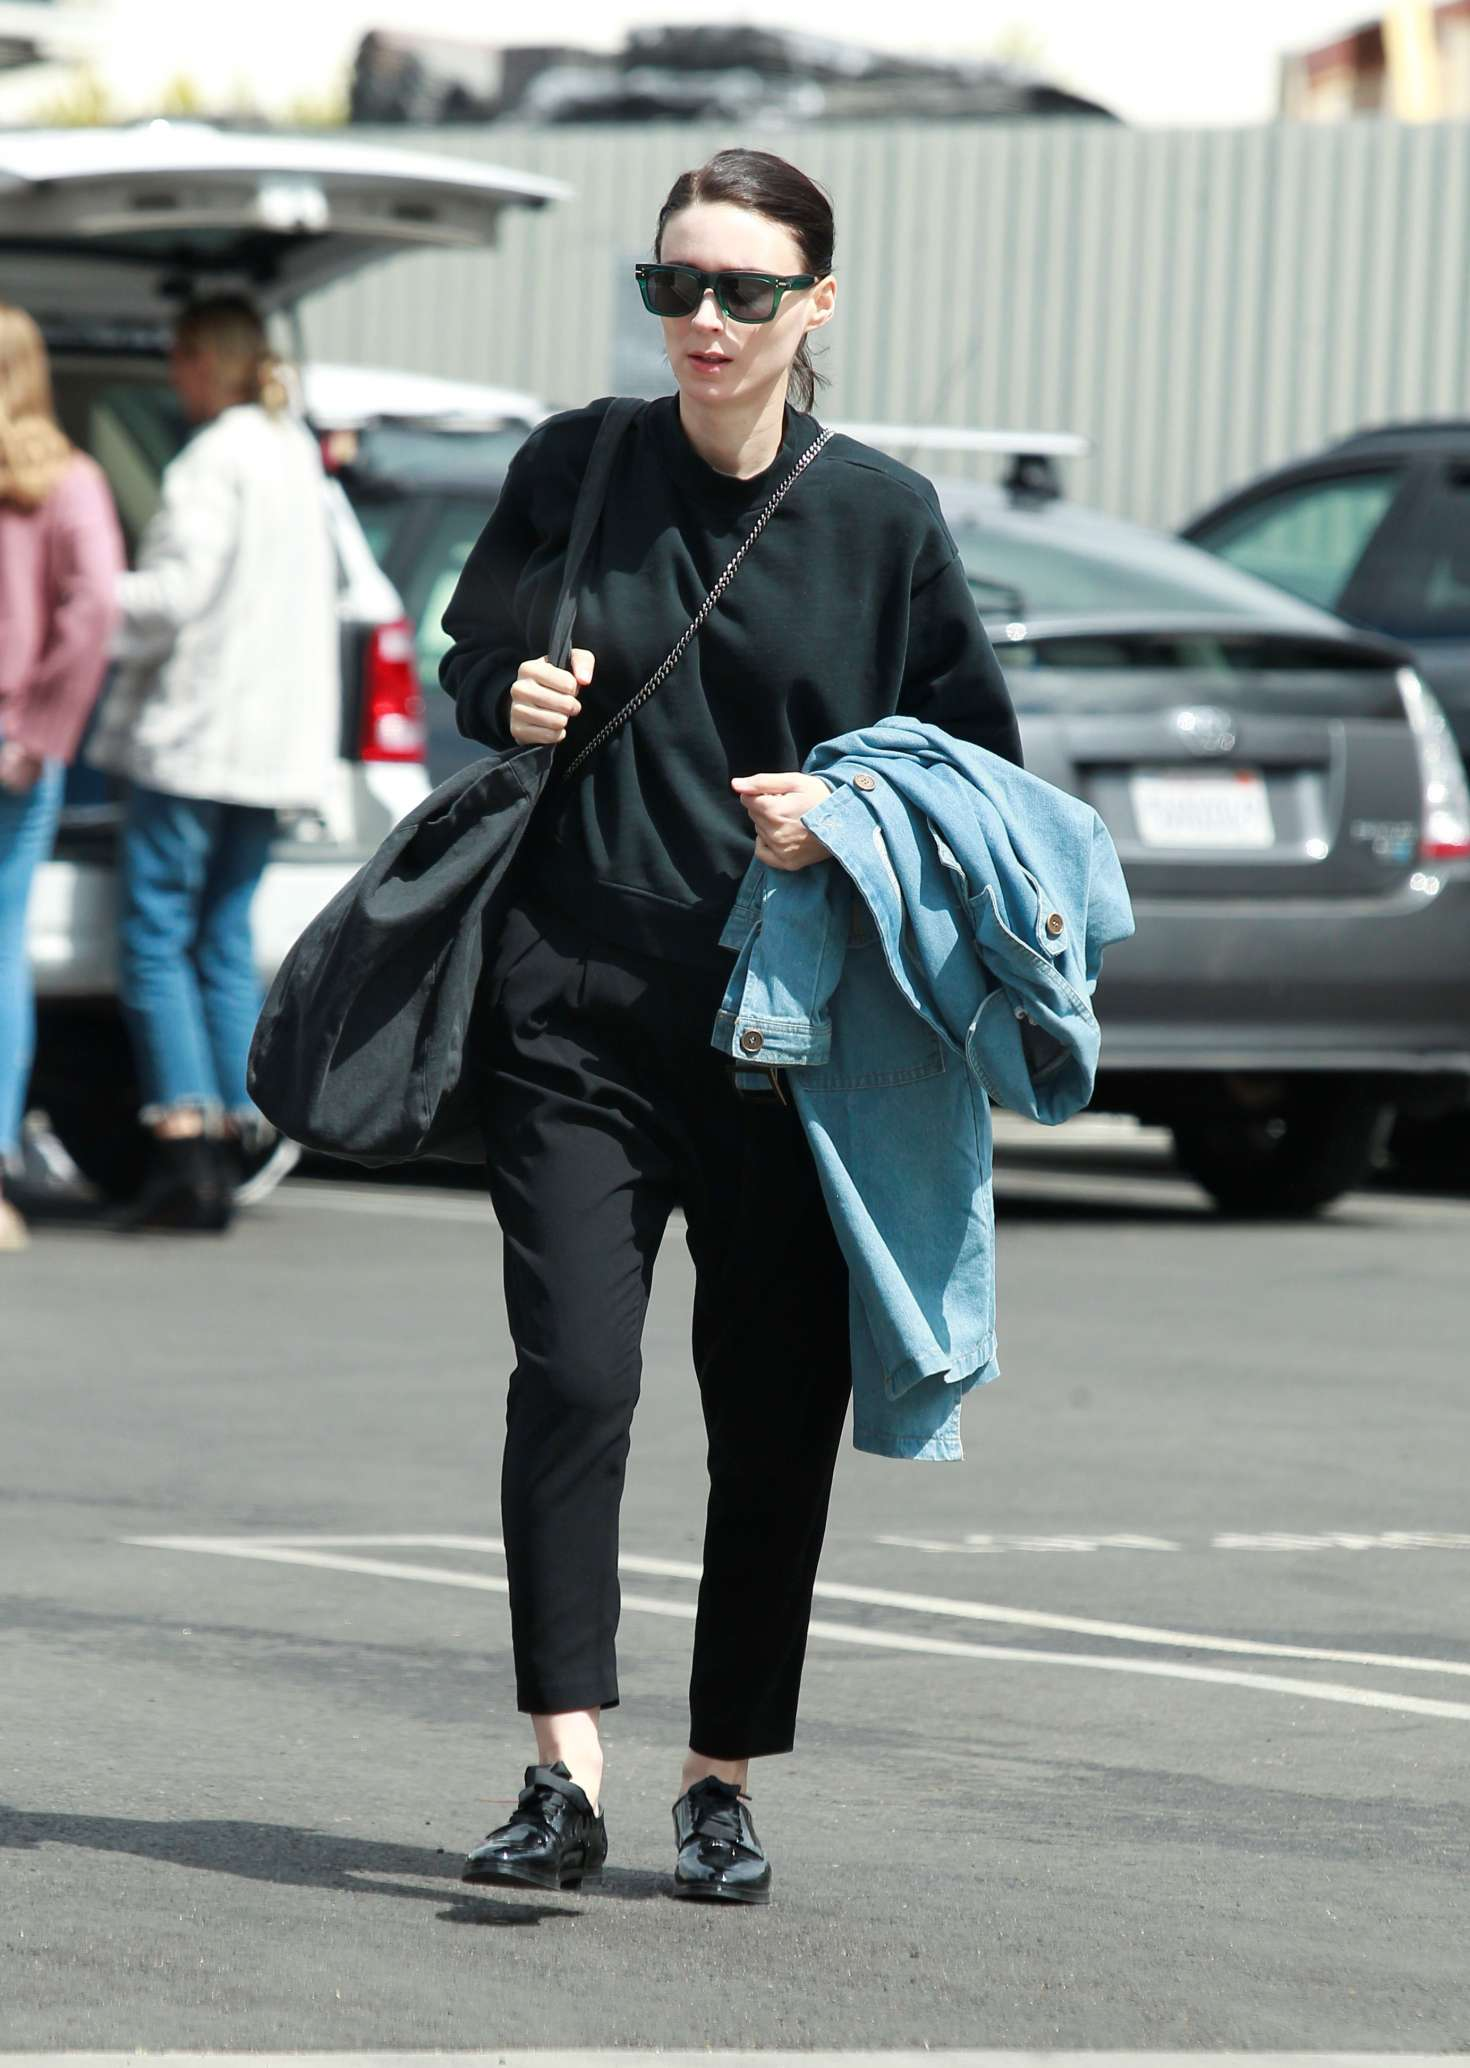 Rooney Mara 2018 : Rooney Mara in Black Out in Los Angeles -01